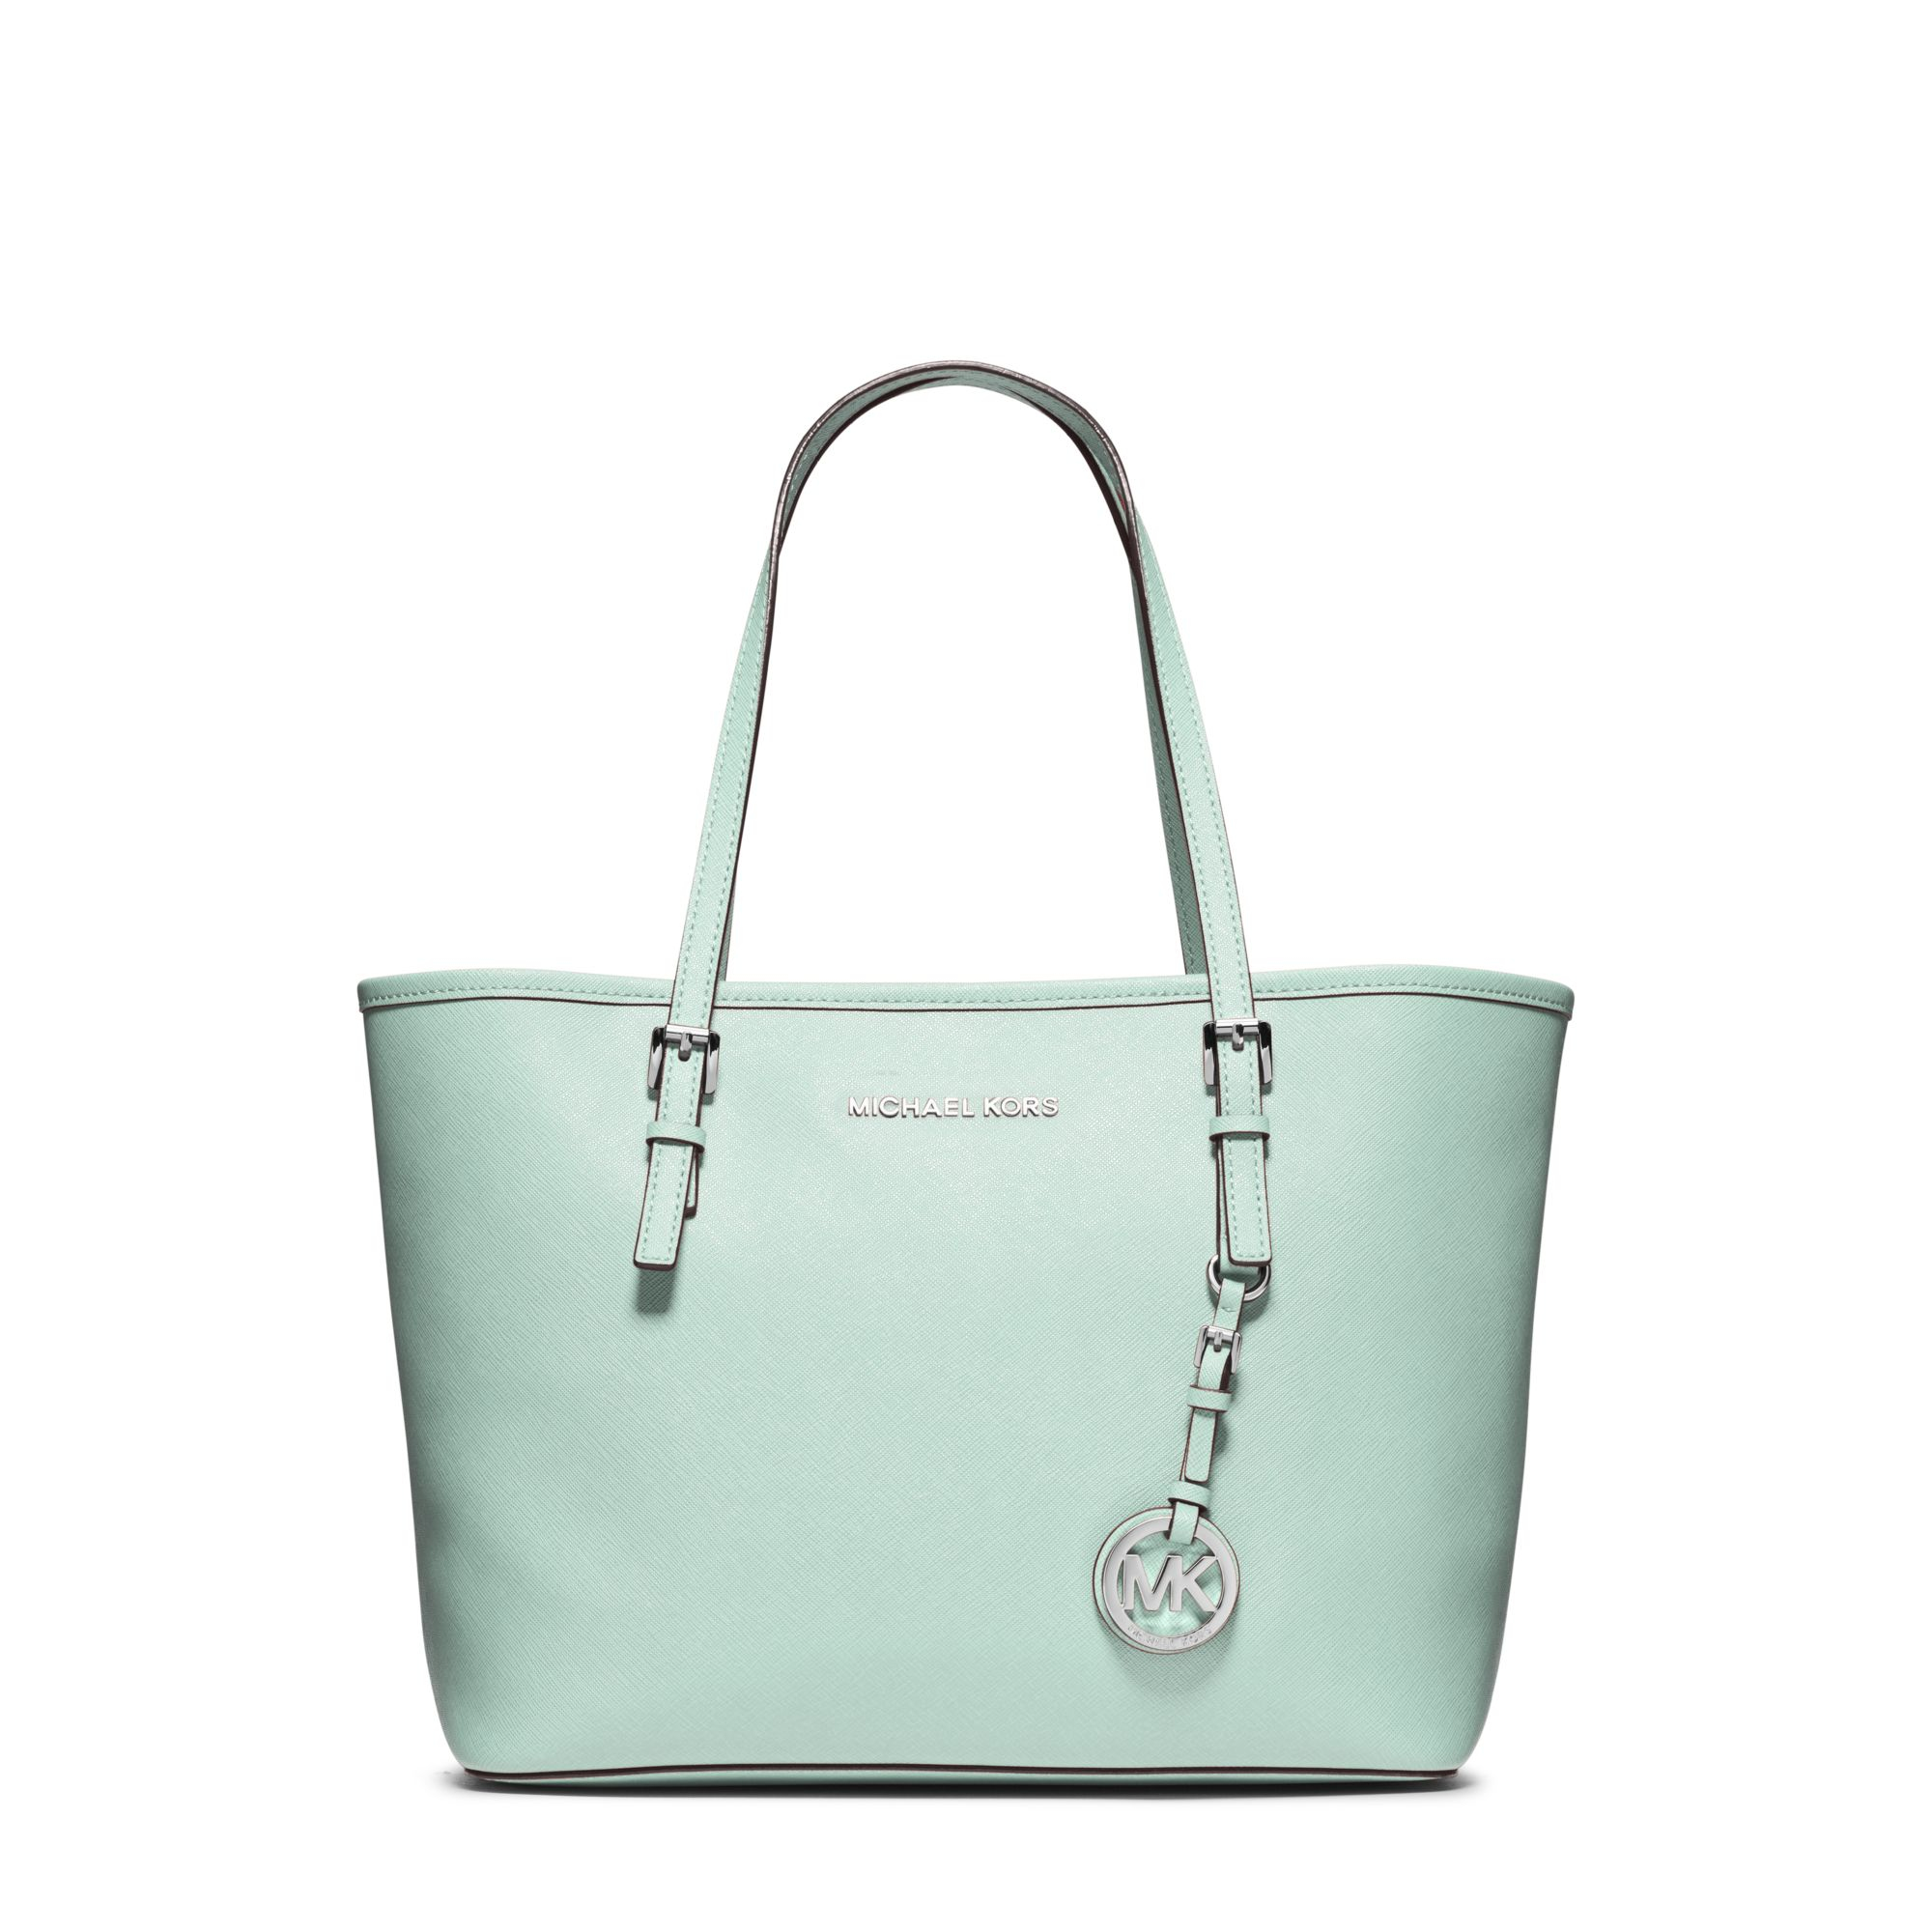 ... shopping lyst michael kors jet set travel small saffiano leather tote  in green 5ab20 cf272 1d50a74728